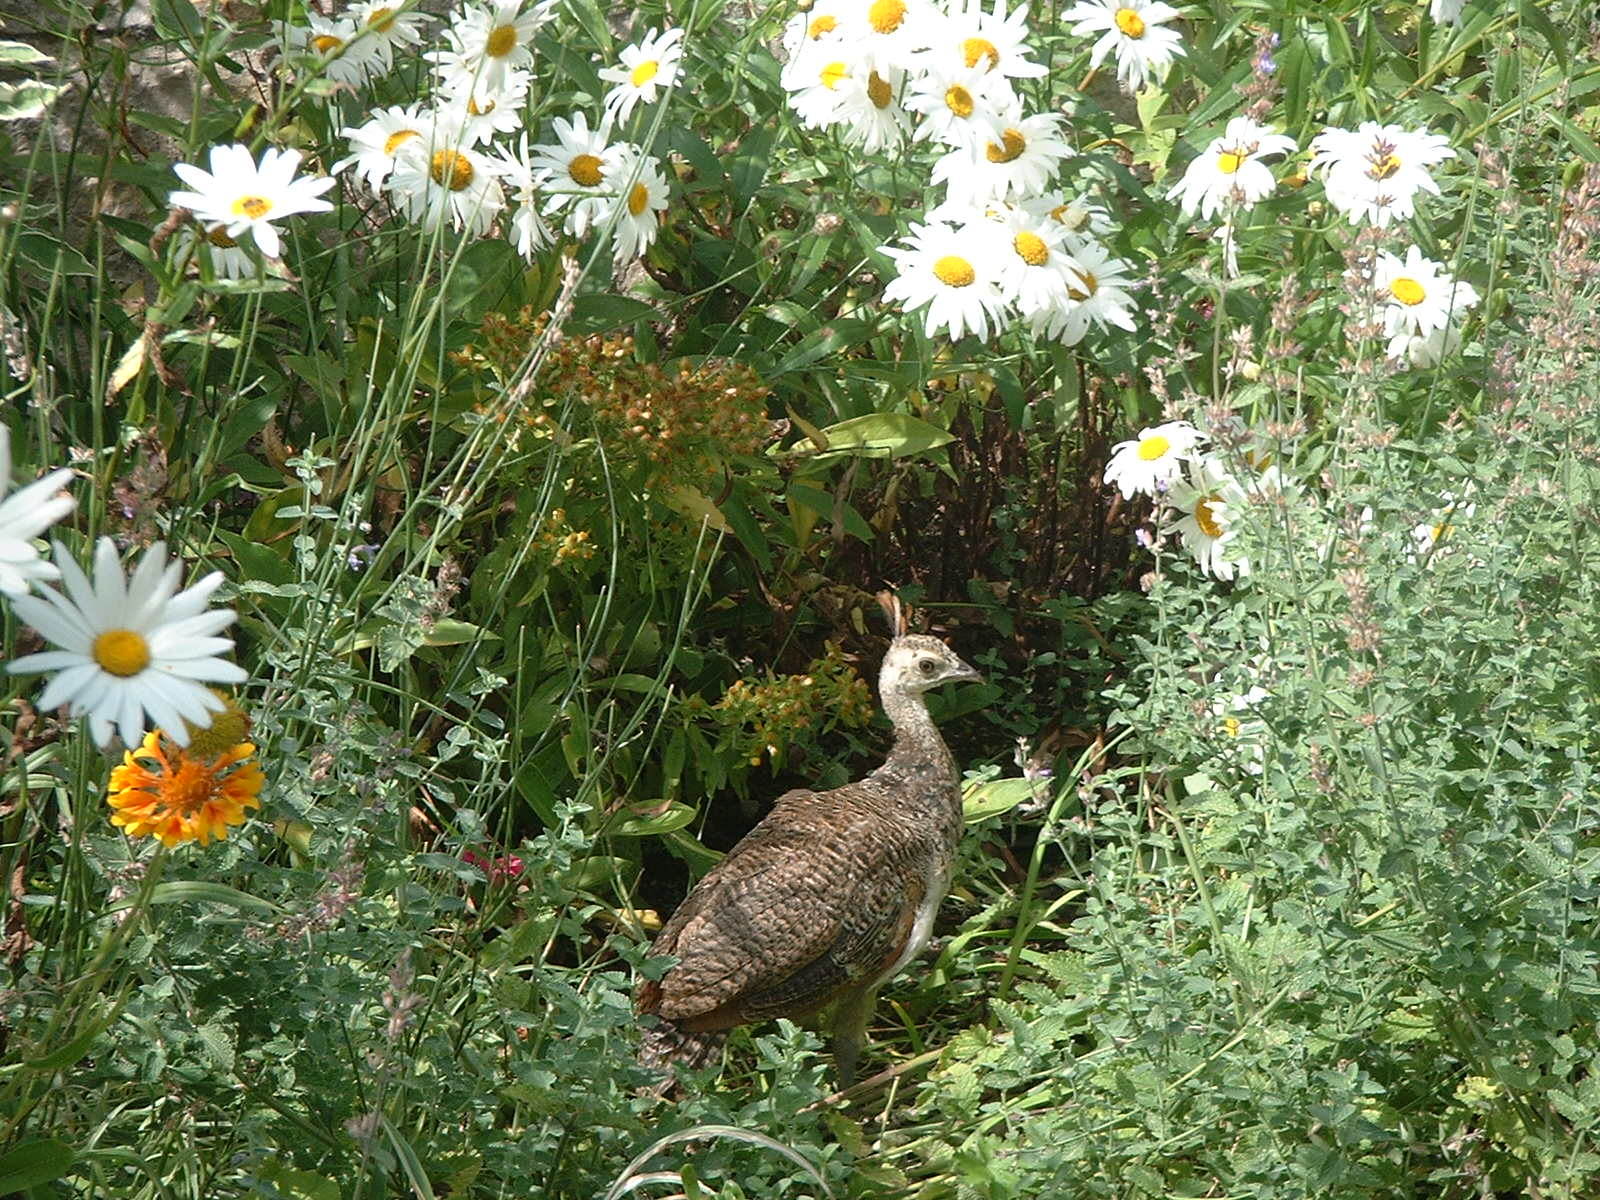 Baby peahen